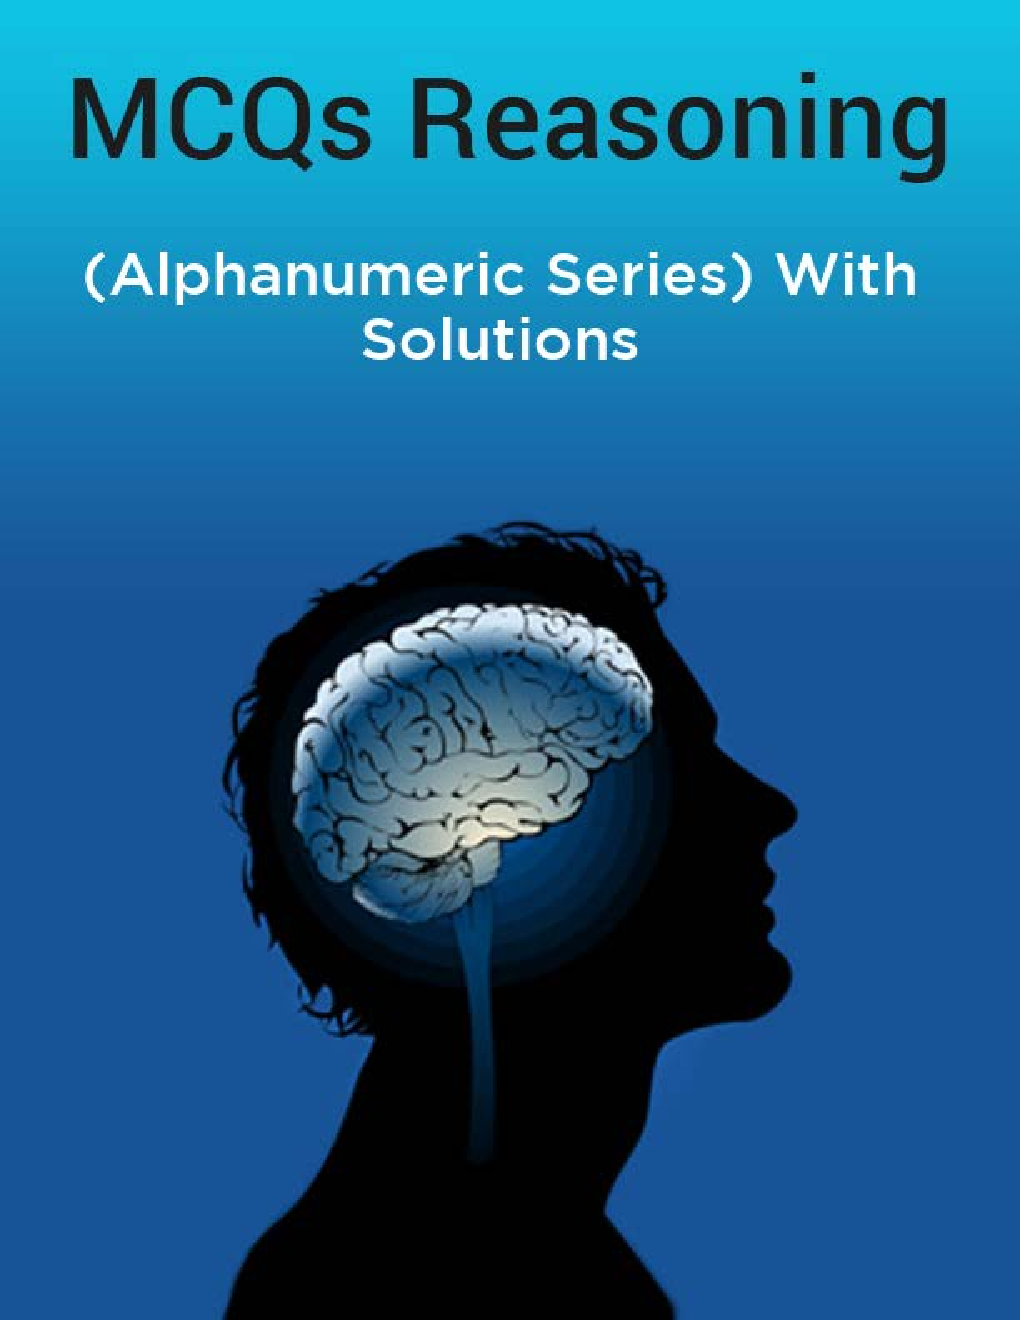 MCQs Reasoning (Alphanumeric Series) With Solutions - Page 1